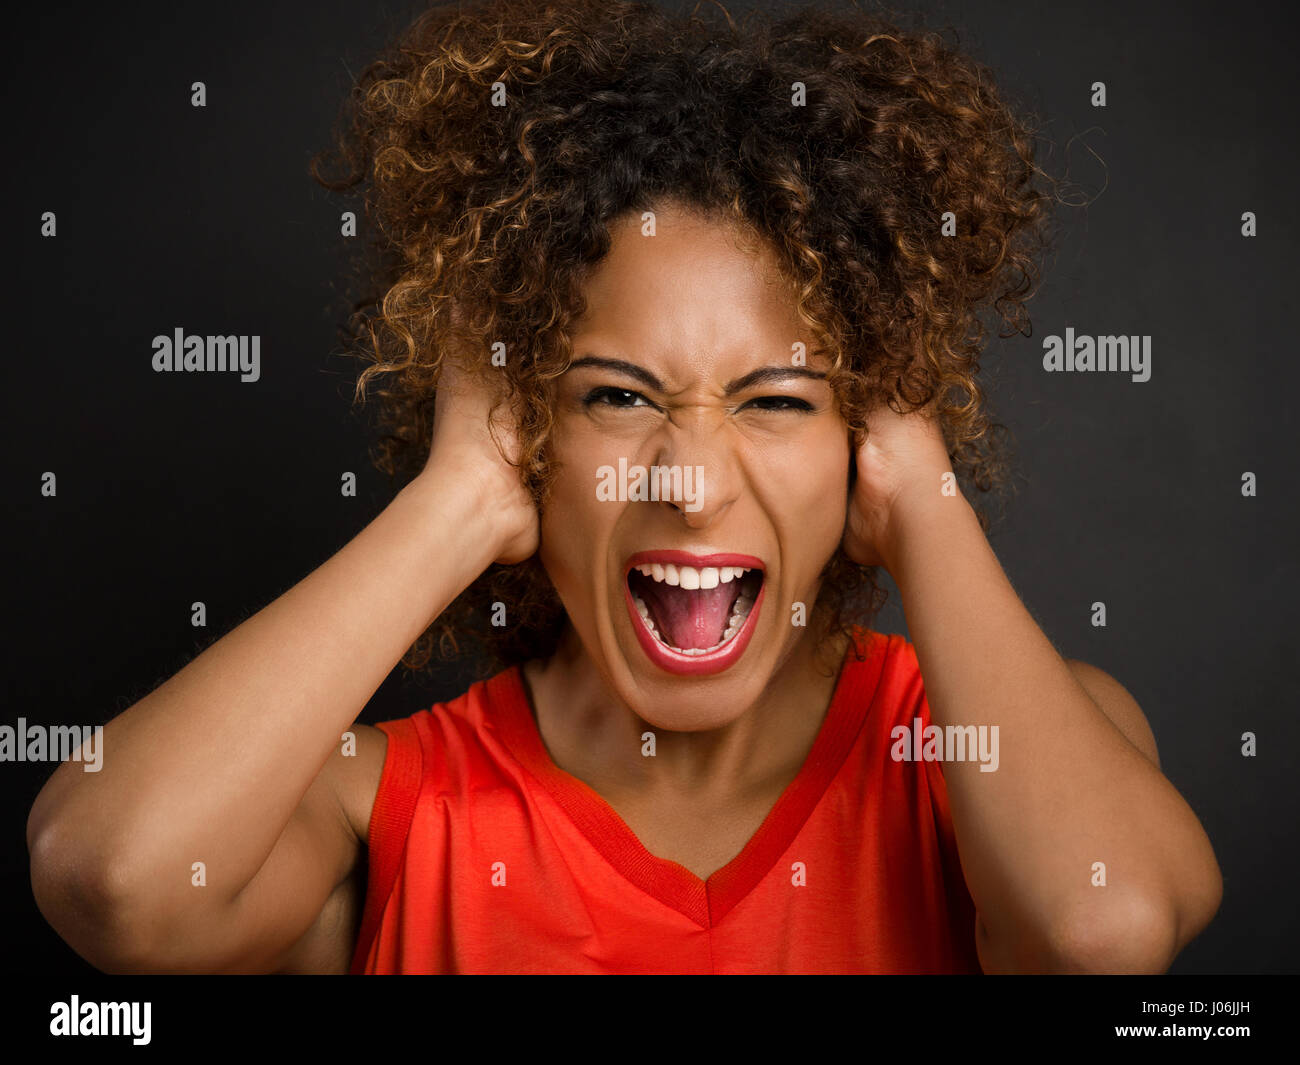 Portrait of an African American woman with hands on the head and yelling - Stock Image